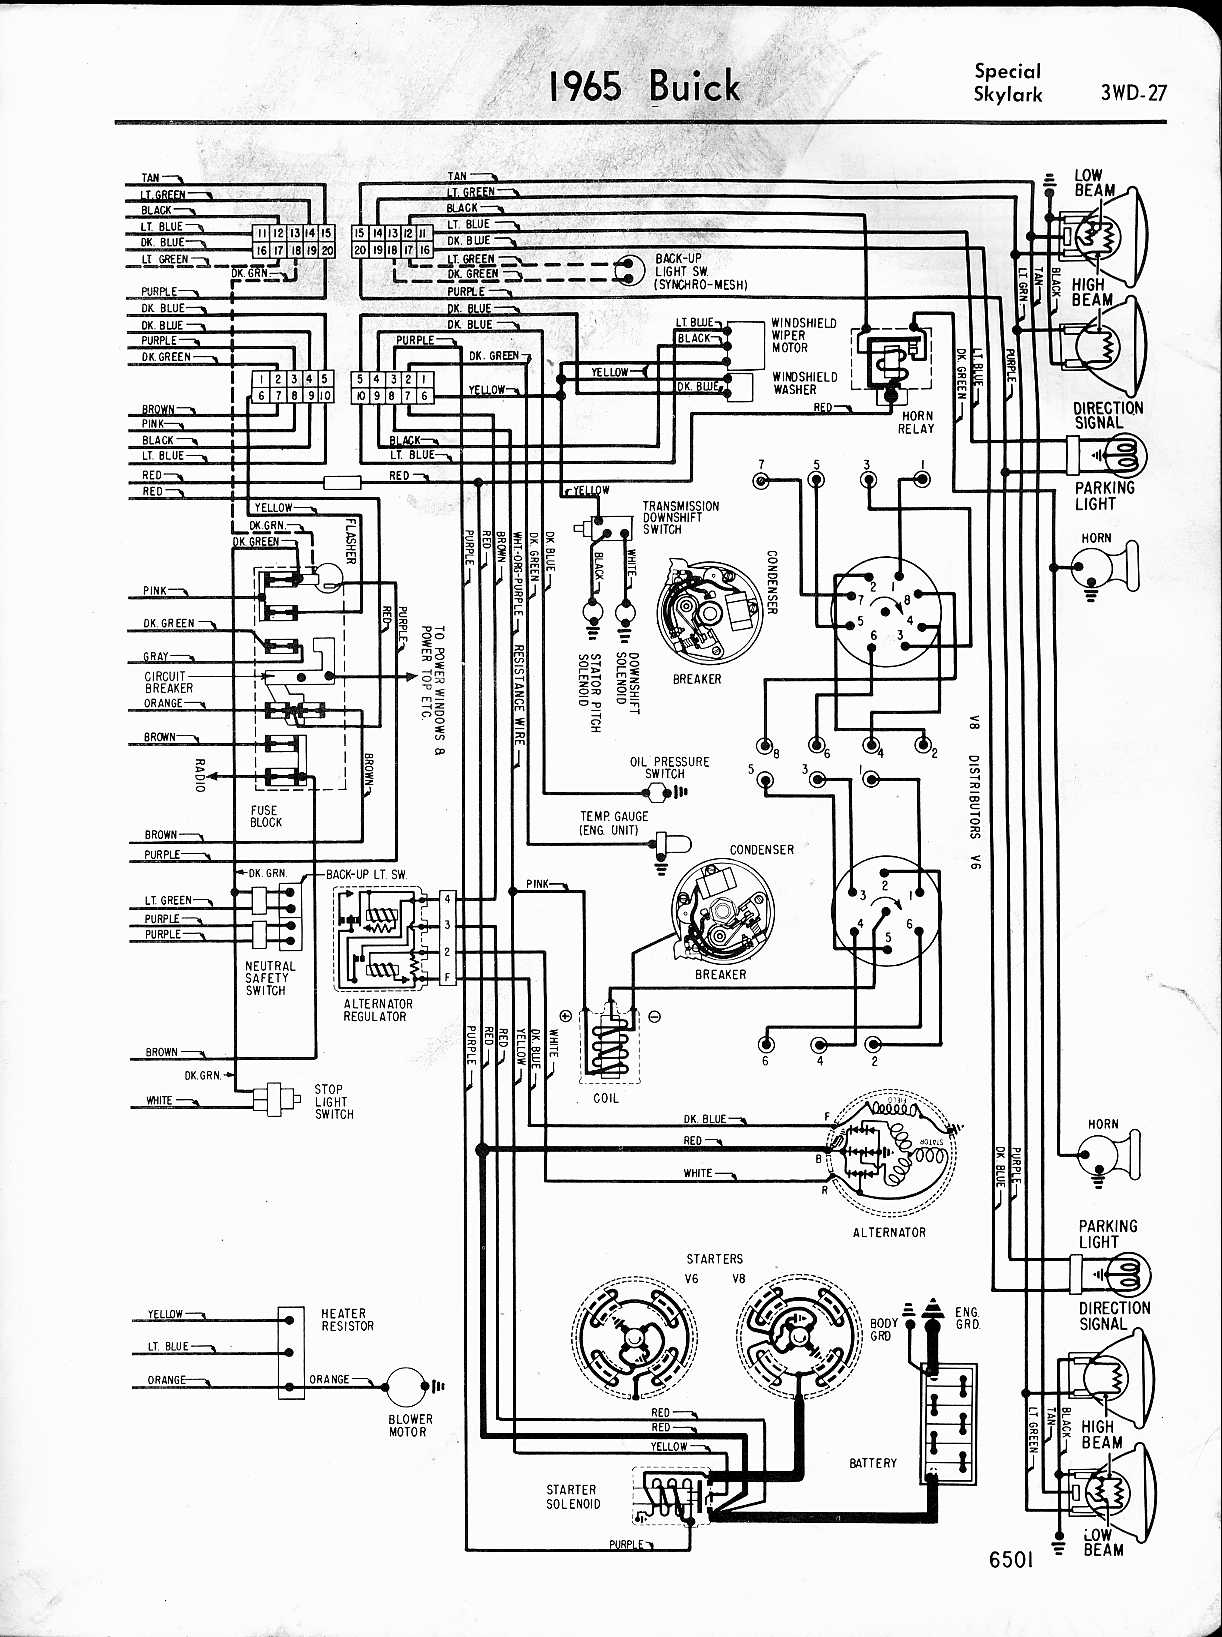 65 buick wiring diagram enthusiast wiring diagrams u2022 rh rasalibre co 1996 Buick Regal Ignition Switch Diagram 2010 Buick Lacrosse Wiring-Diagram